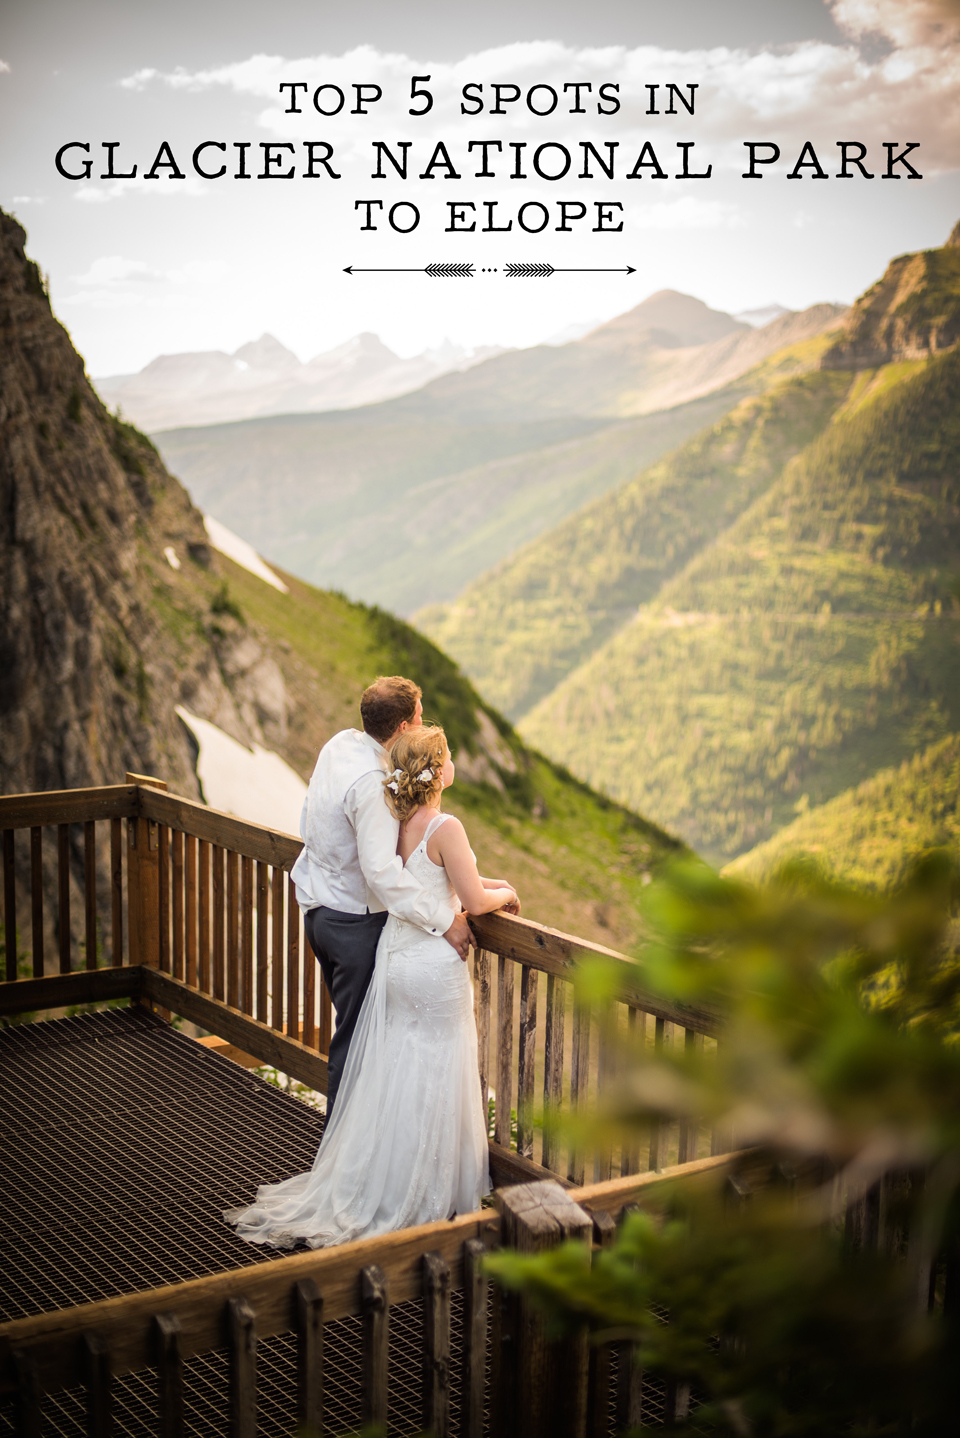 Top 5 Spots In Glacier National Park To Elope Wedding And Family Photographer Based Out Of Kalispell Montana 406 871 3524 Call